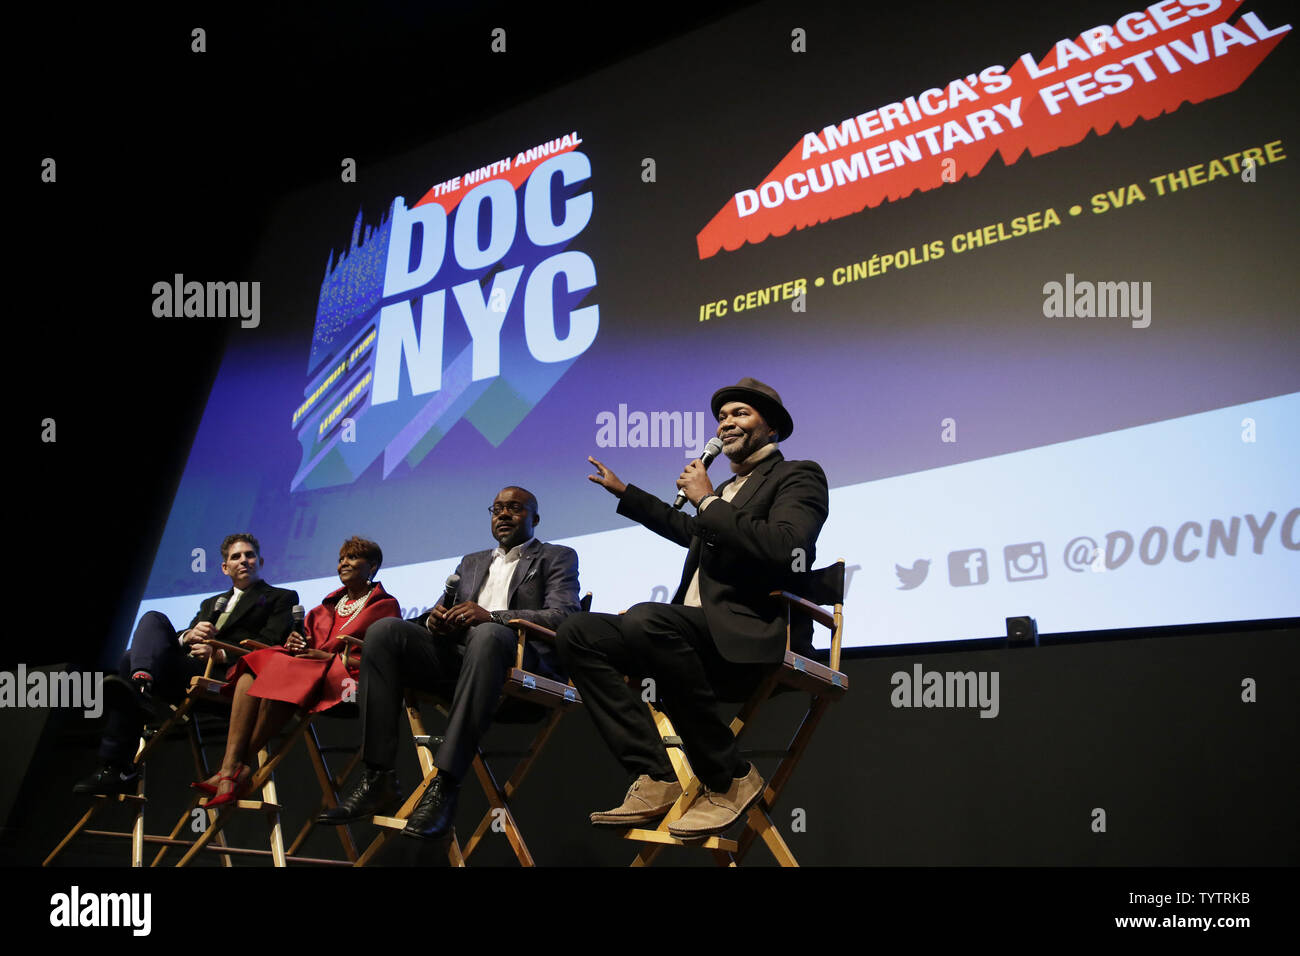 Lead Producer Alan Elliott, Aretha Franklin's niece & executive producer Sabrina Owens and Tirrell D. Whittley speak at a Q&A session at the World Premiere of Aretha Franklin documentary AMAZING GRACE at DOC NYC at SVA Theatre on November 12, 2018 in New York City.       Photo by John Angelillo/UPI - Stock Image